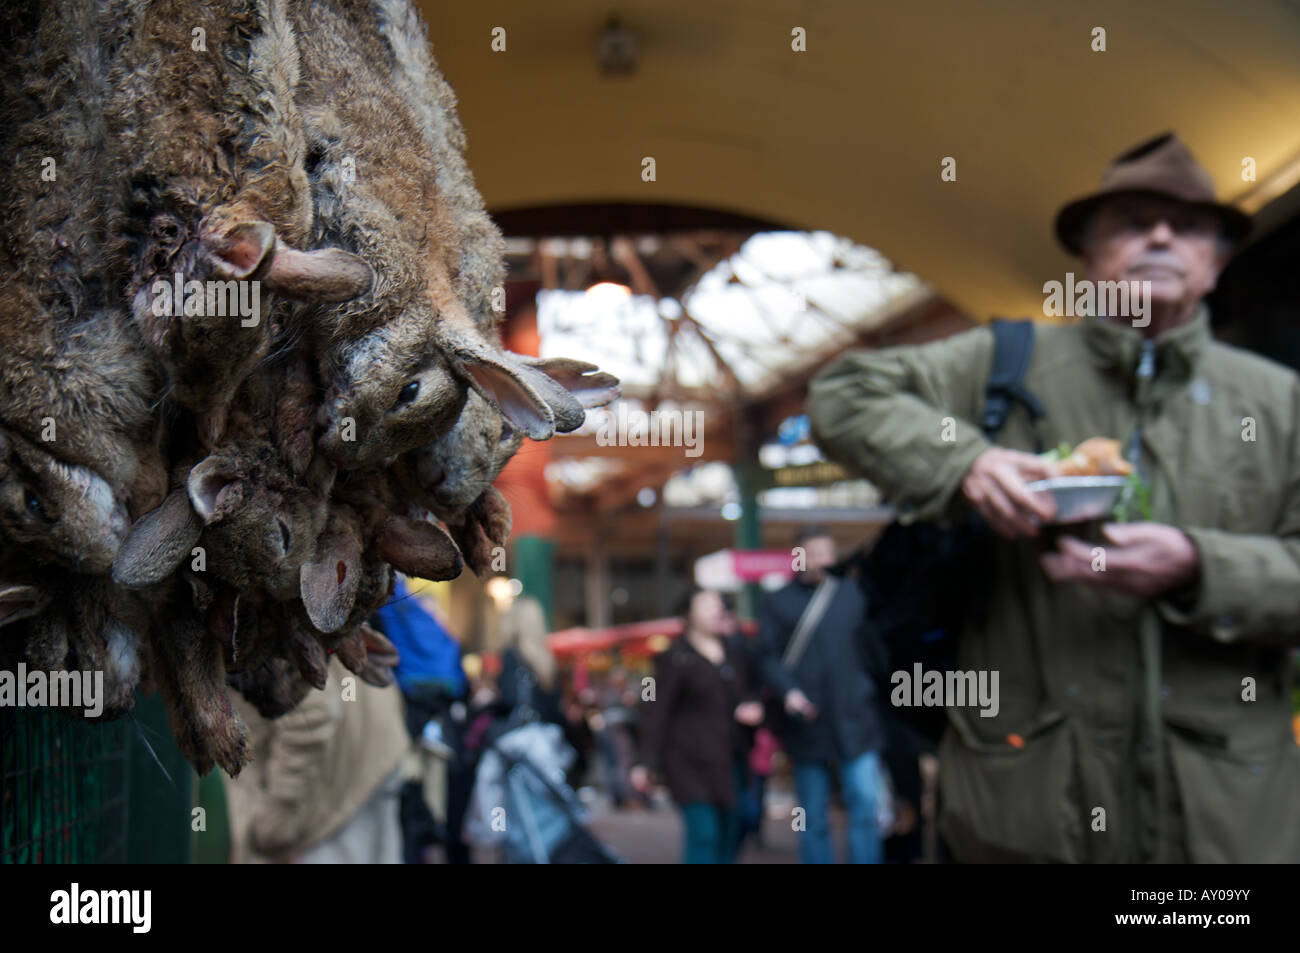 Hares strung up for sale in London's Borough market whilst a man walks by with a pie in the background Stock Photo